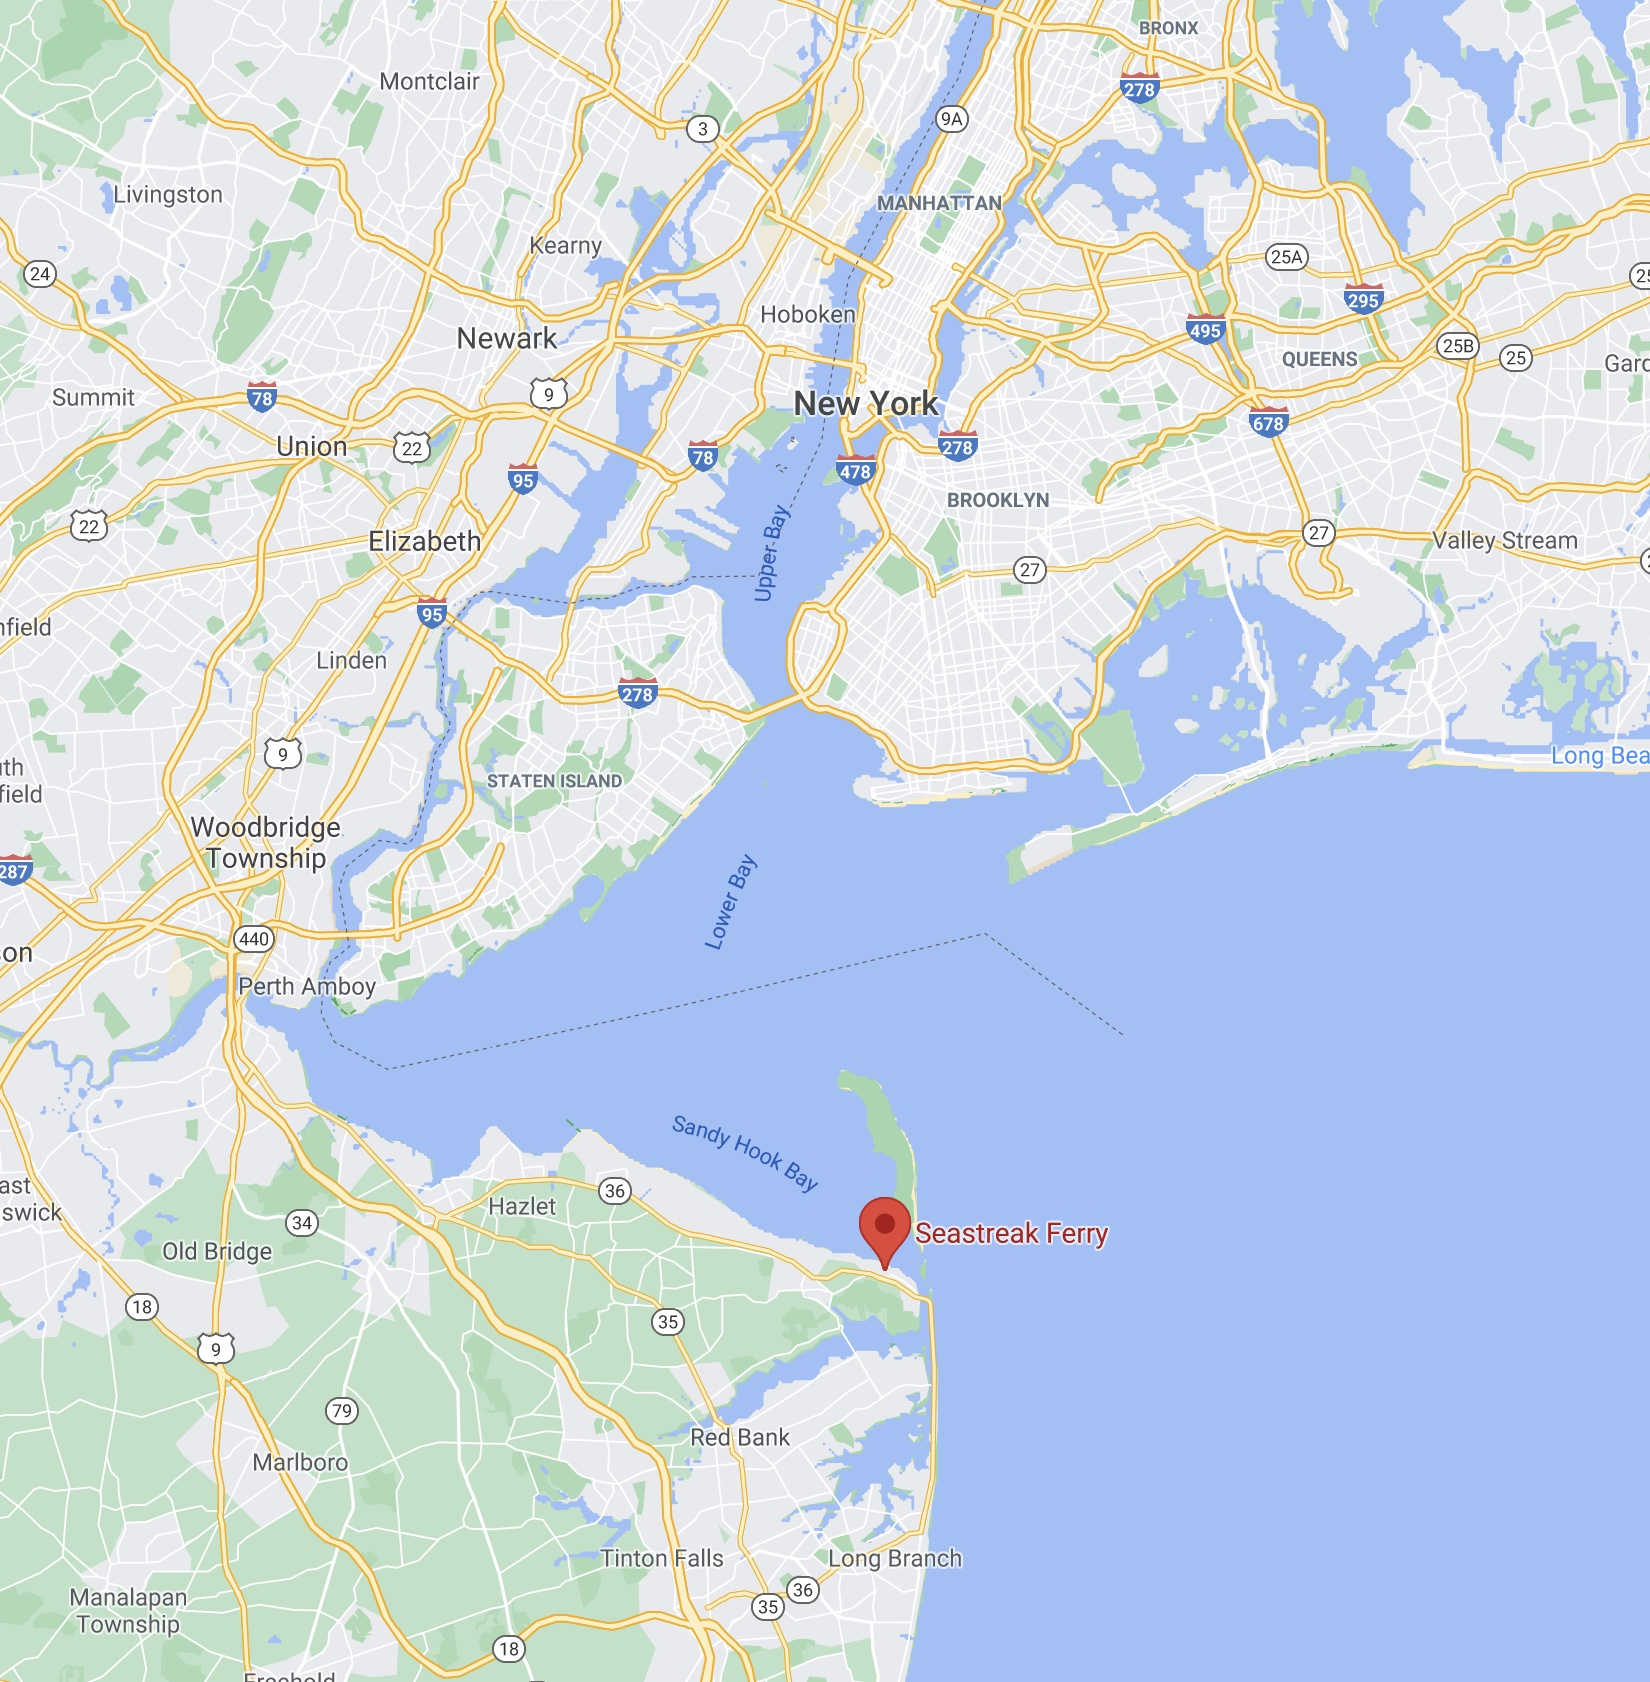 Map of eastern shore of NJ along Sandy Hook Bay and Lower Bay. A red pin is in the location of Highlands, NJ.